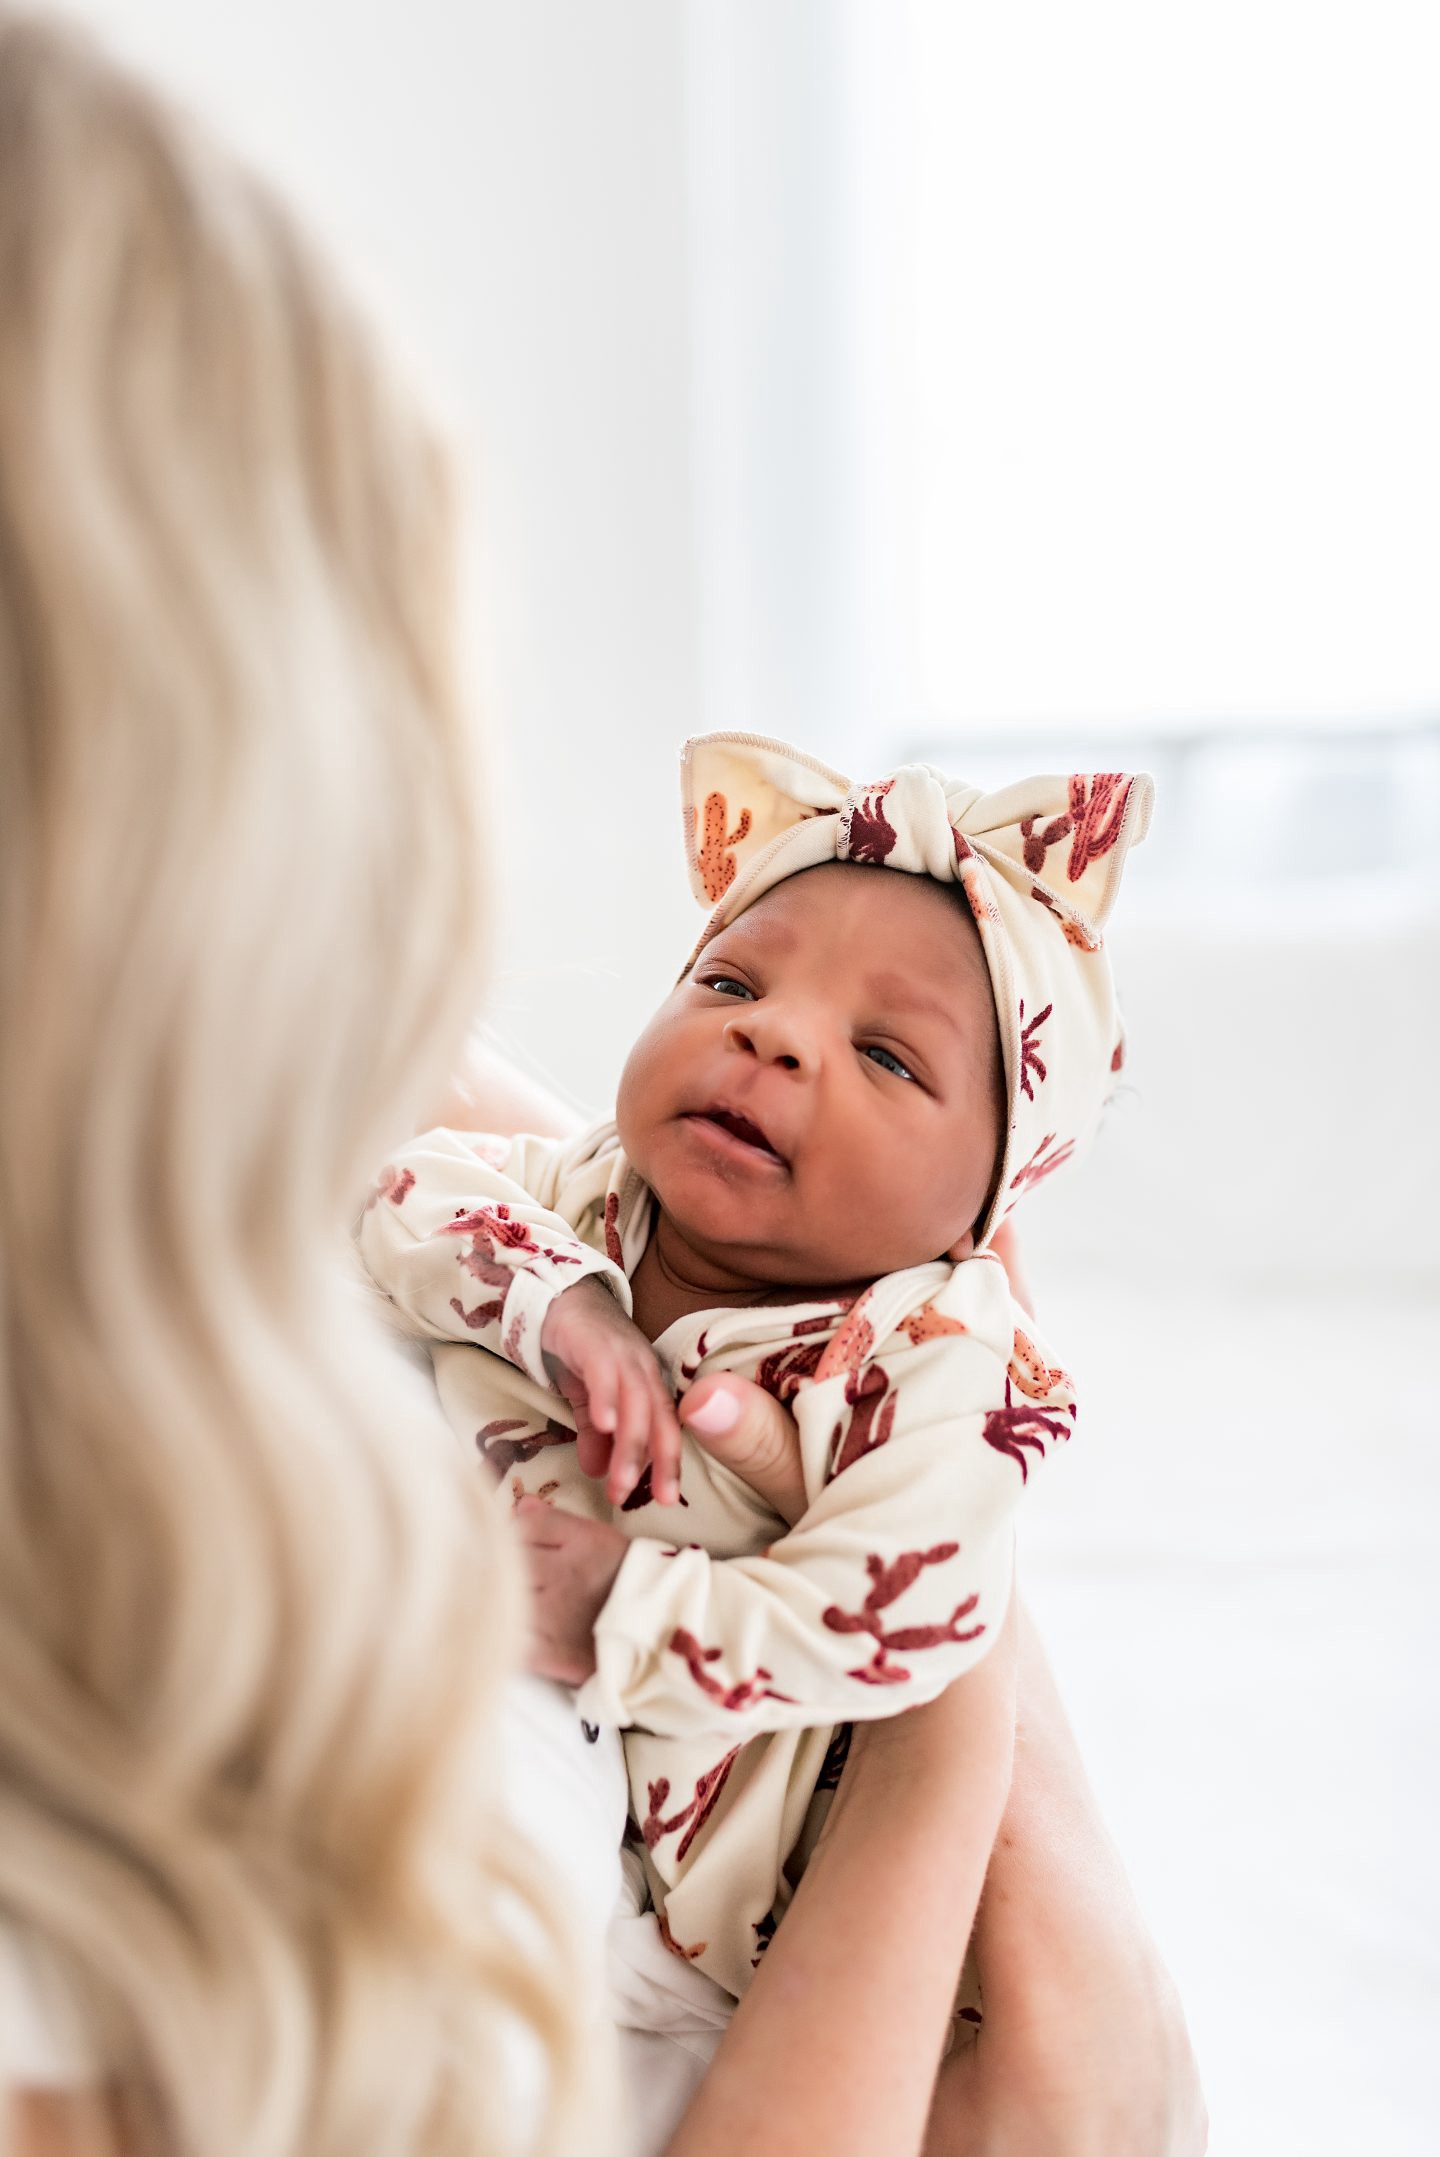 Our adoption journey to adopt baby Nina featured by popular Orange County lifestyle blogger, Dress Me Blonde